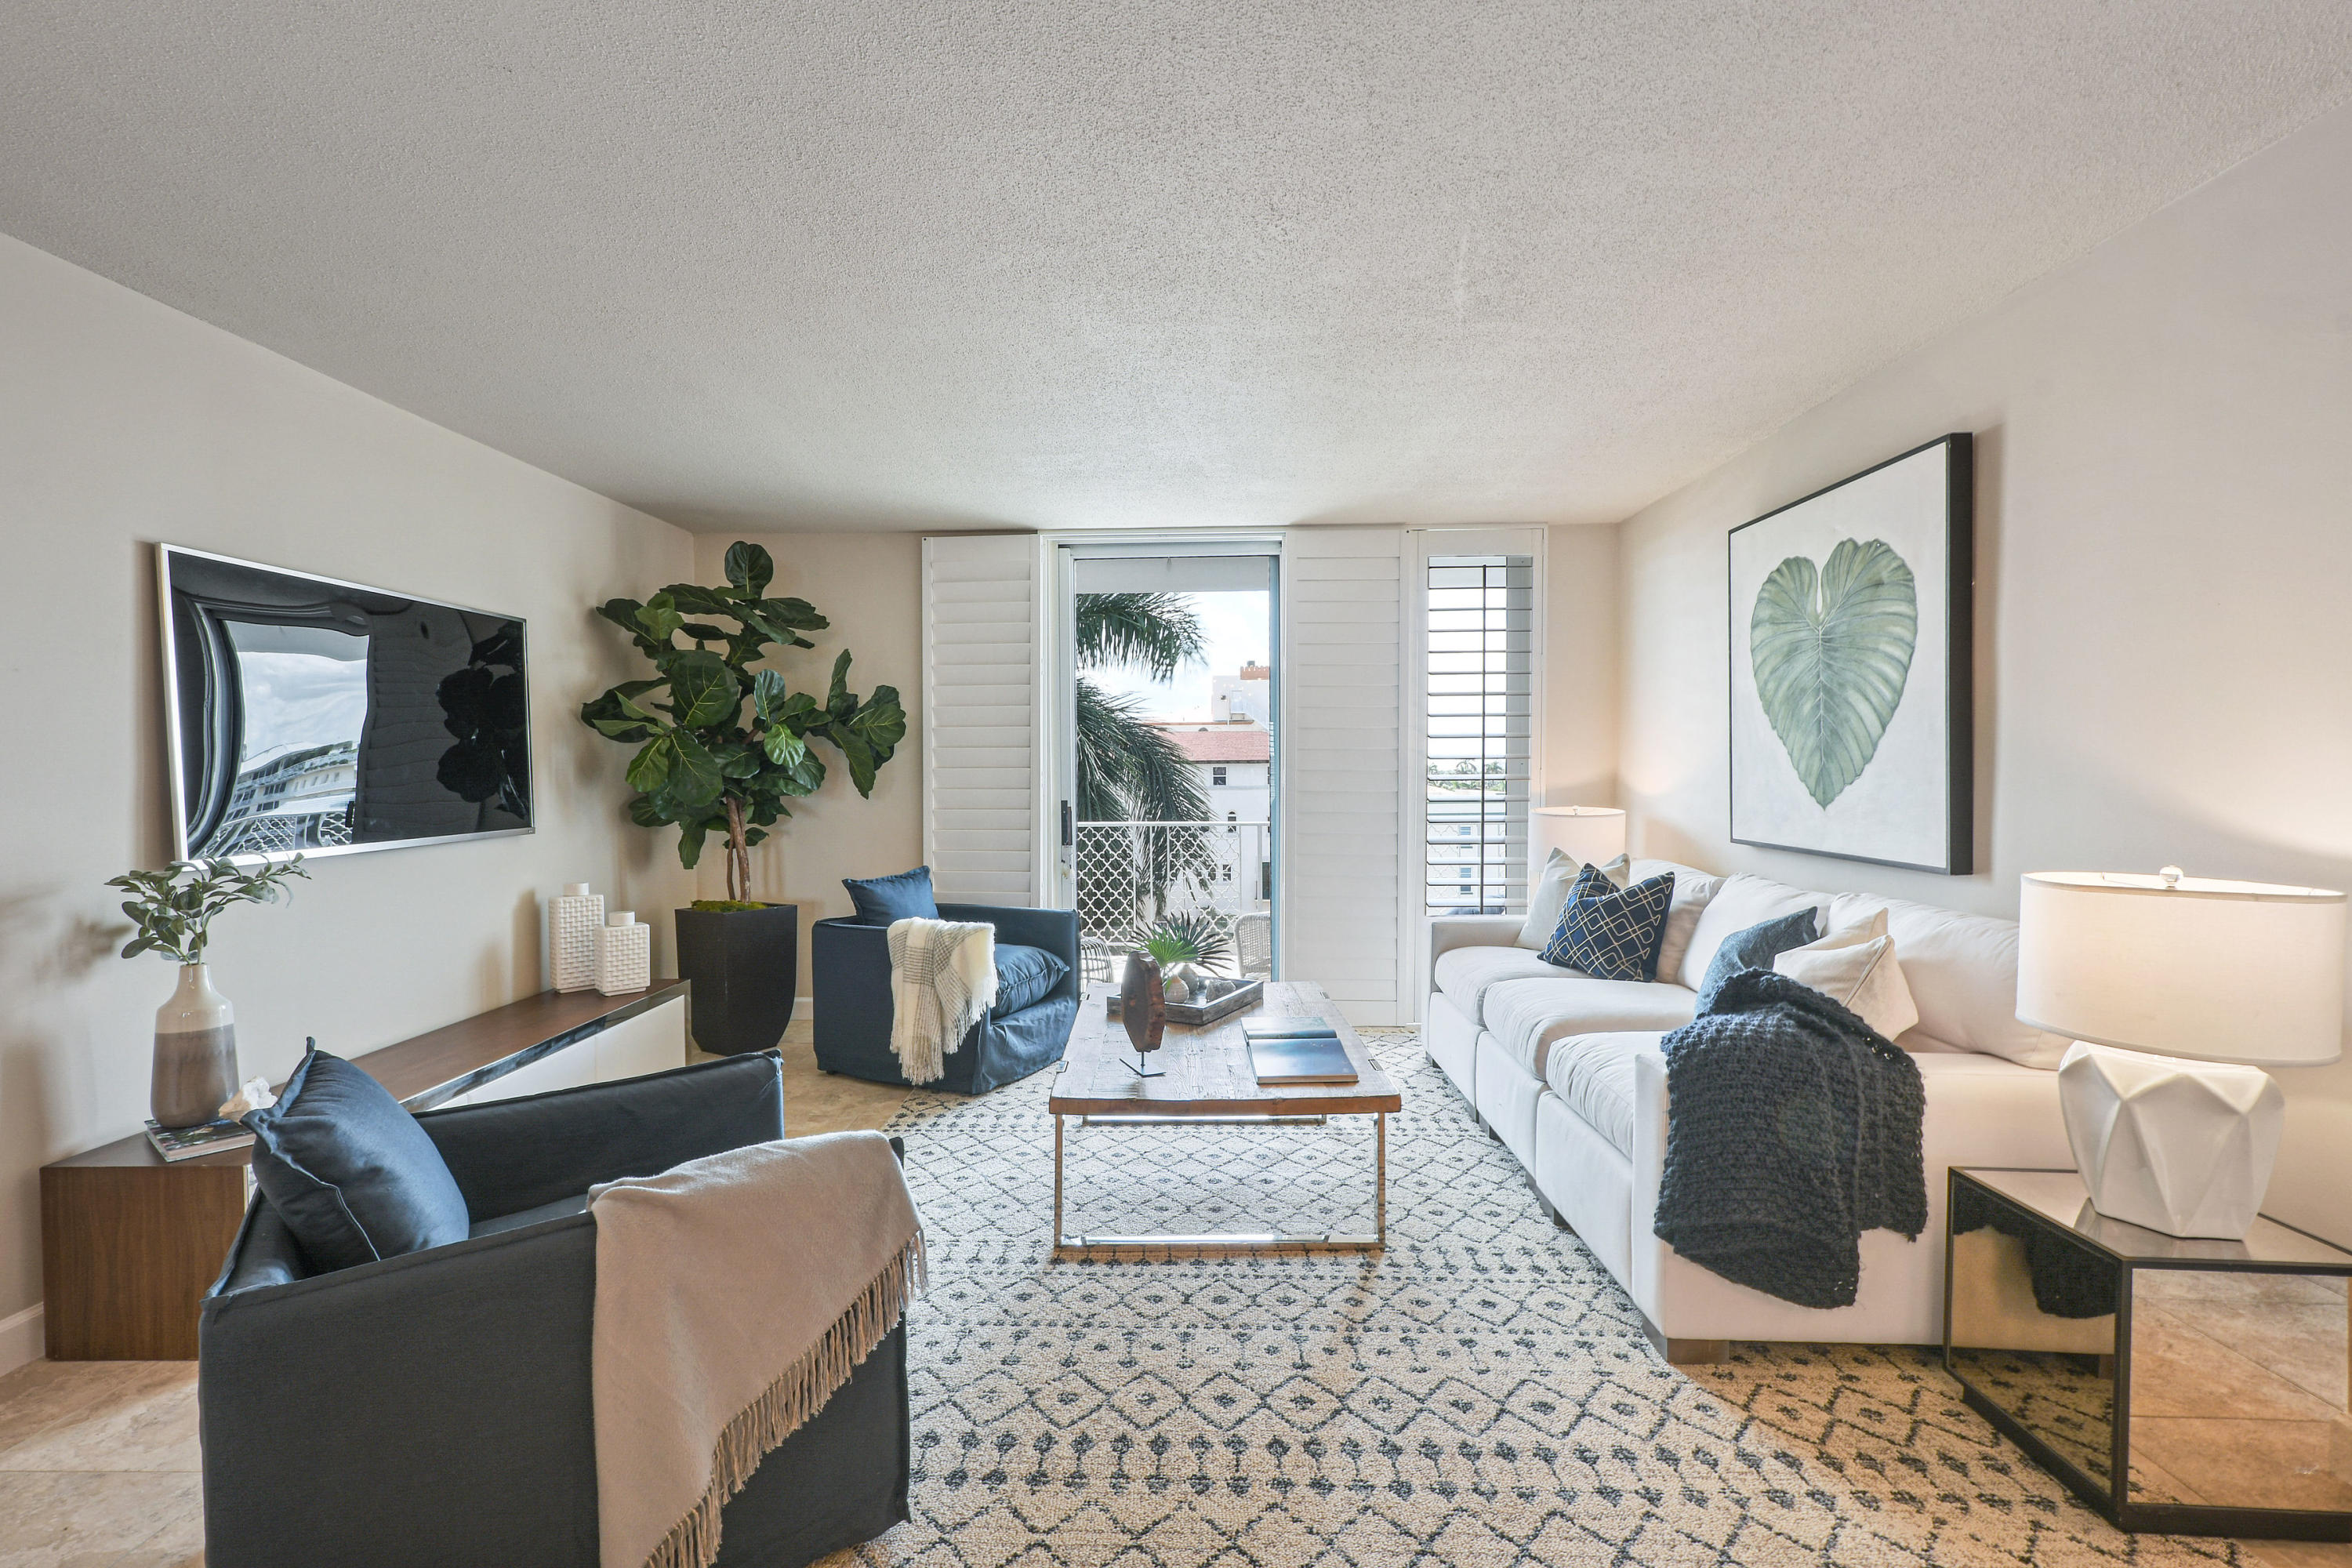 Spectacular penthouse in the heart of Palm Beach. Close distance to beach access and luxurious Worth Ave. This turnkey one bed, one bathroom is the perfect landing spot to enjoy all the incredible offerings of Palm Beach.